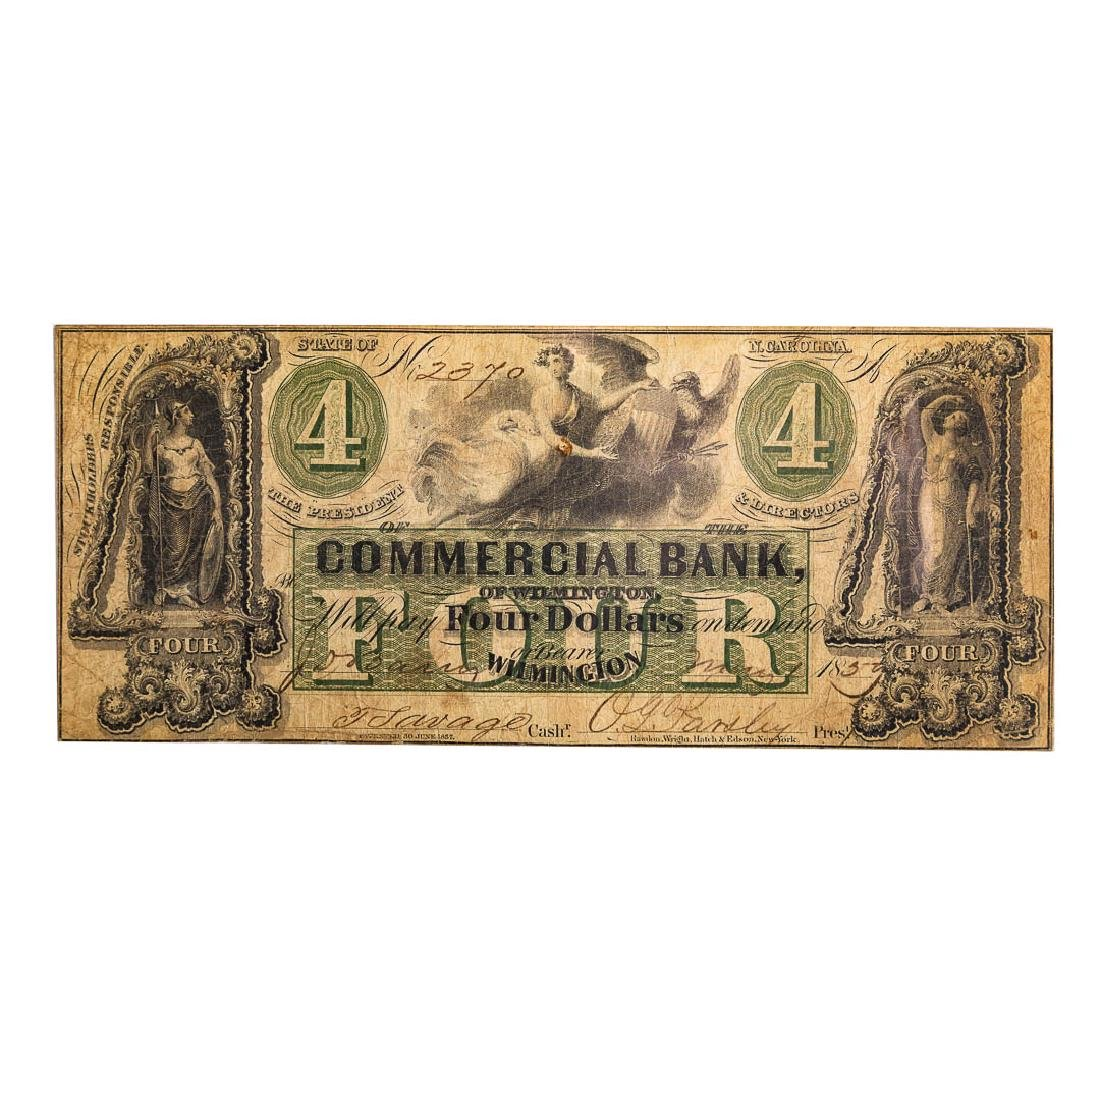 [US] $4 Commercial Bank of Wilmington, NC 1859